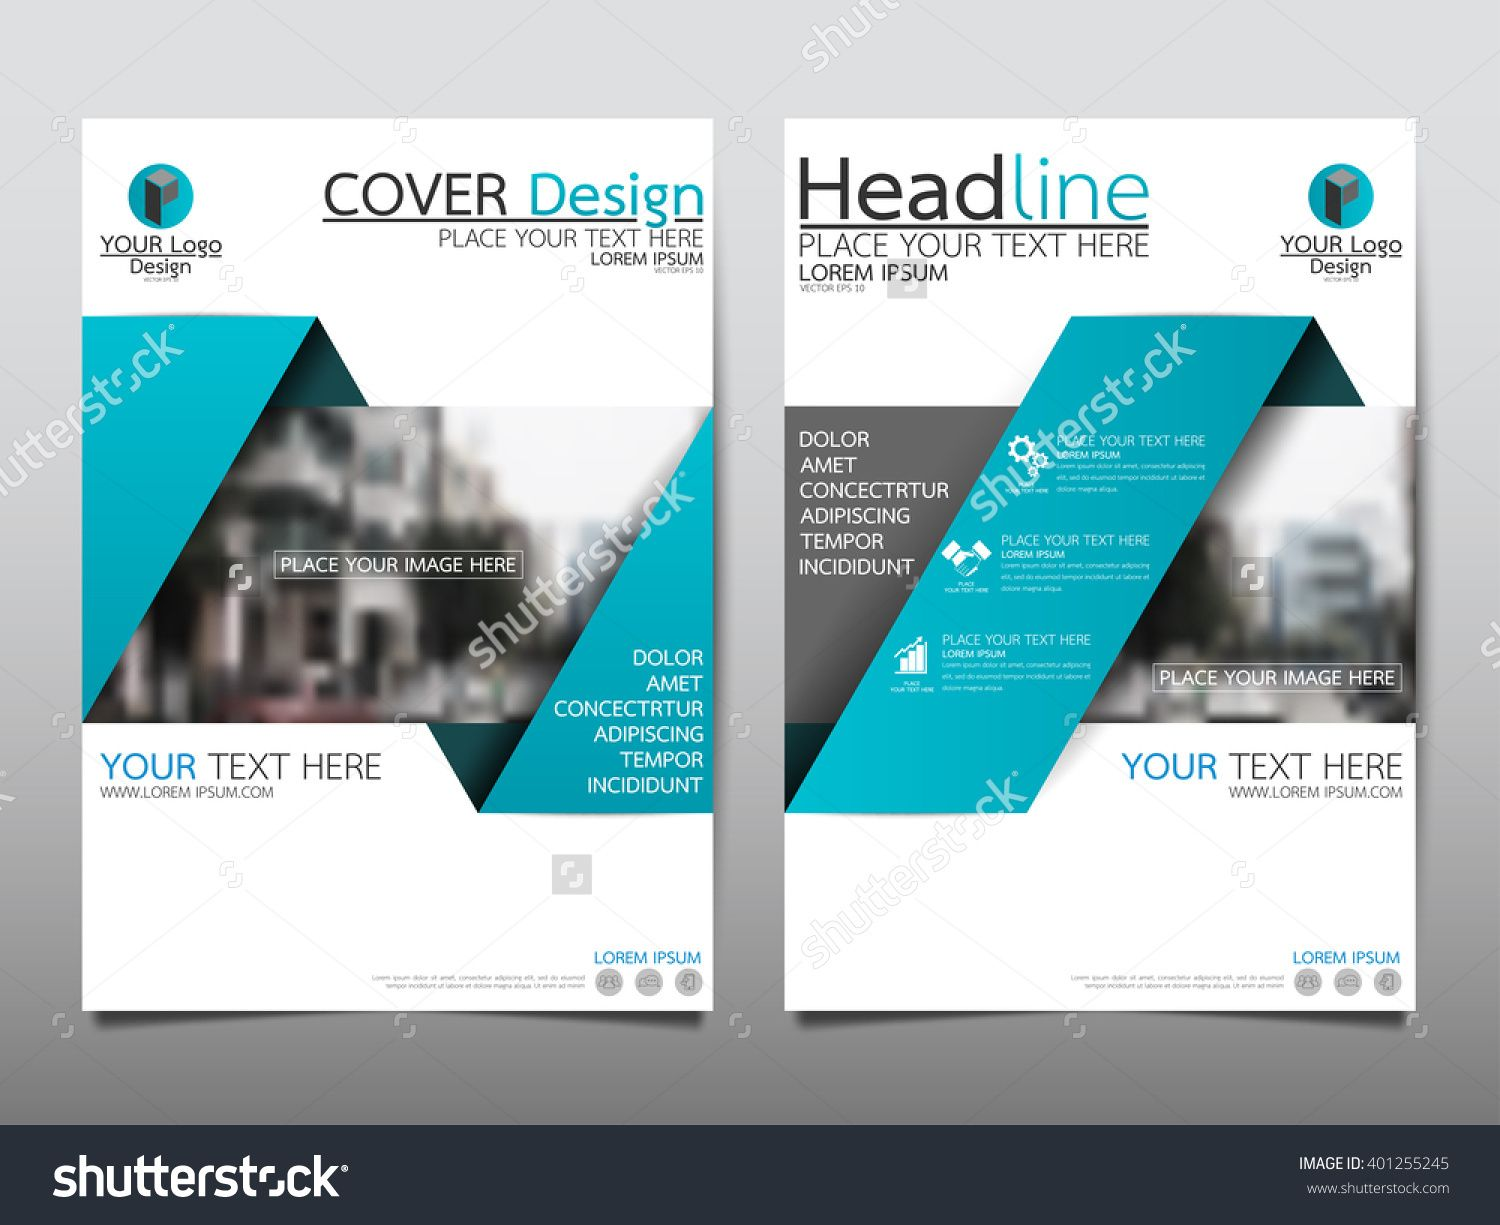 how to make a leaflet on powerpoint